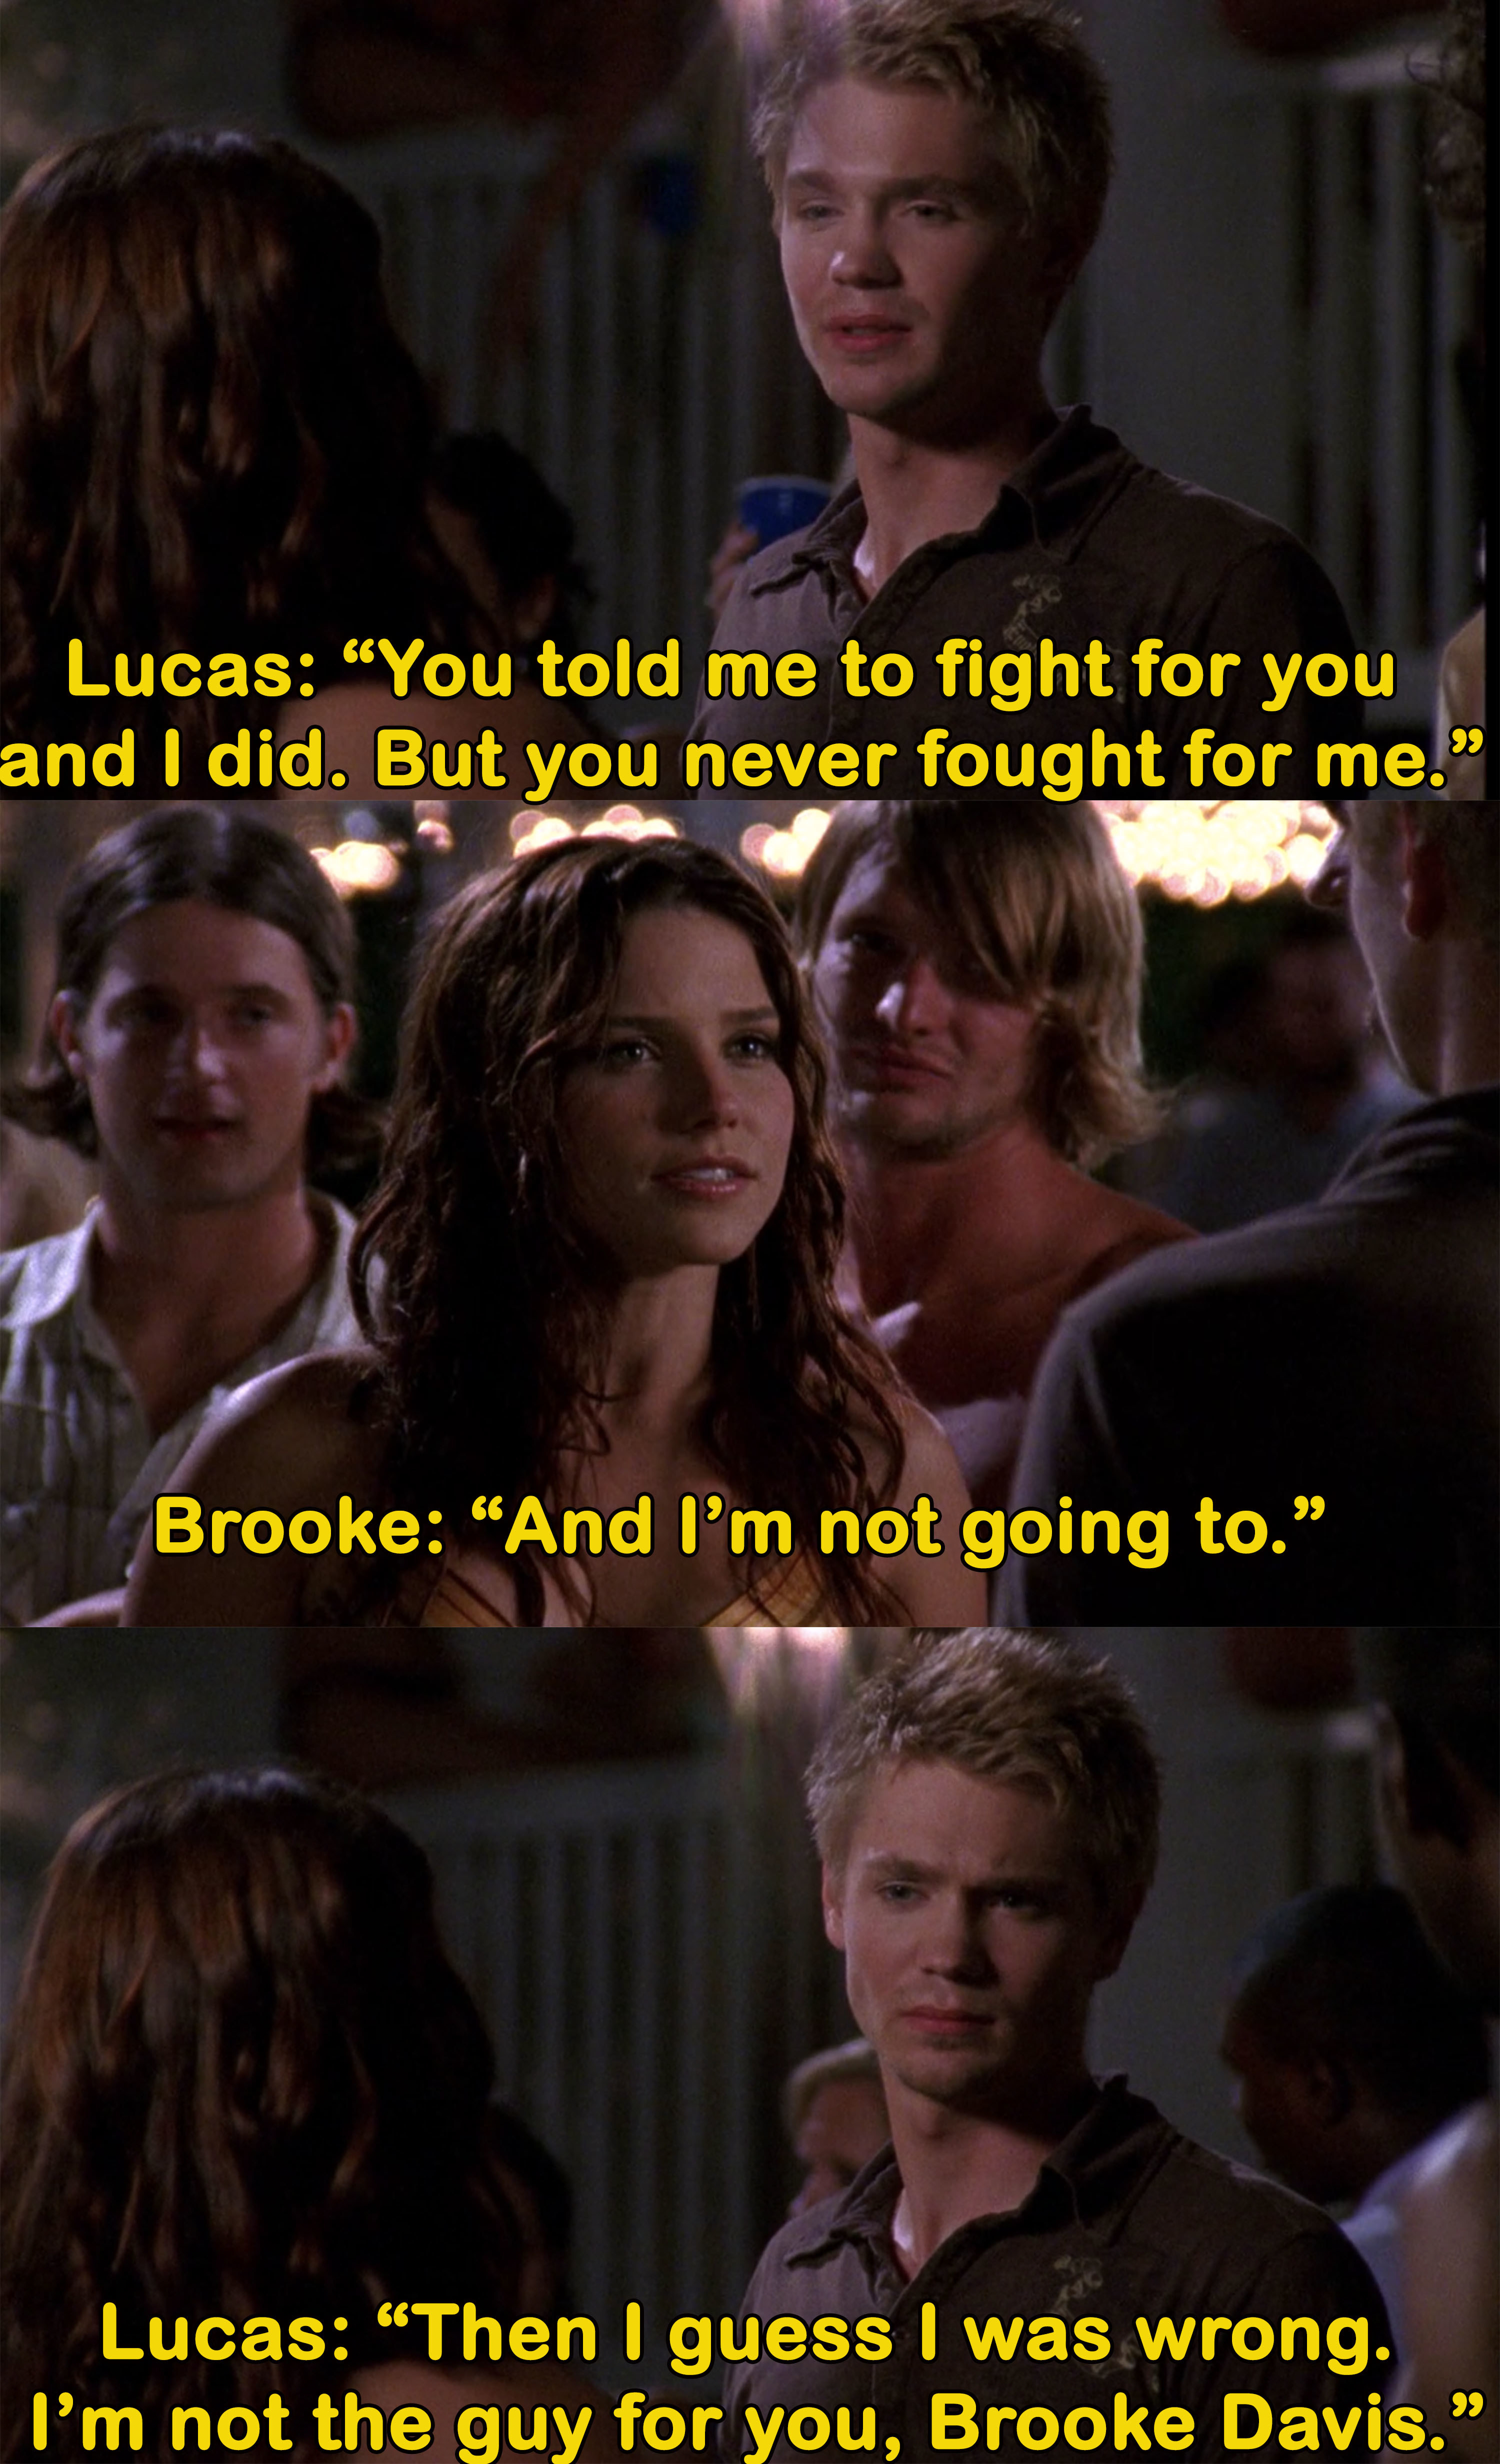 Lucas says he isn't the guy for Brooke